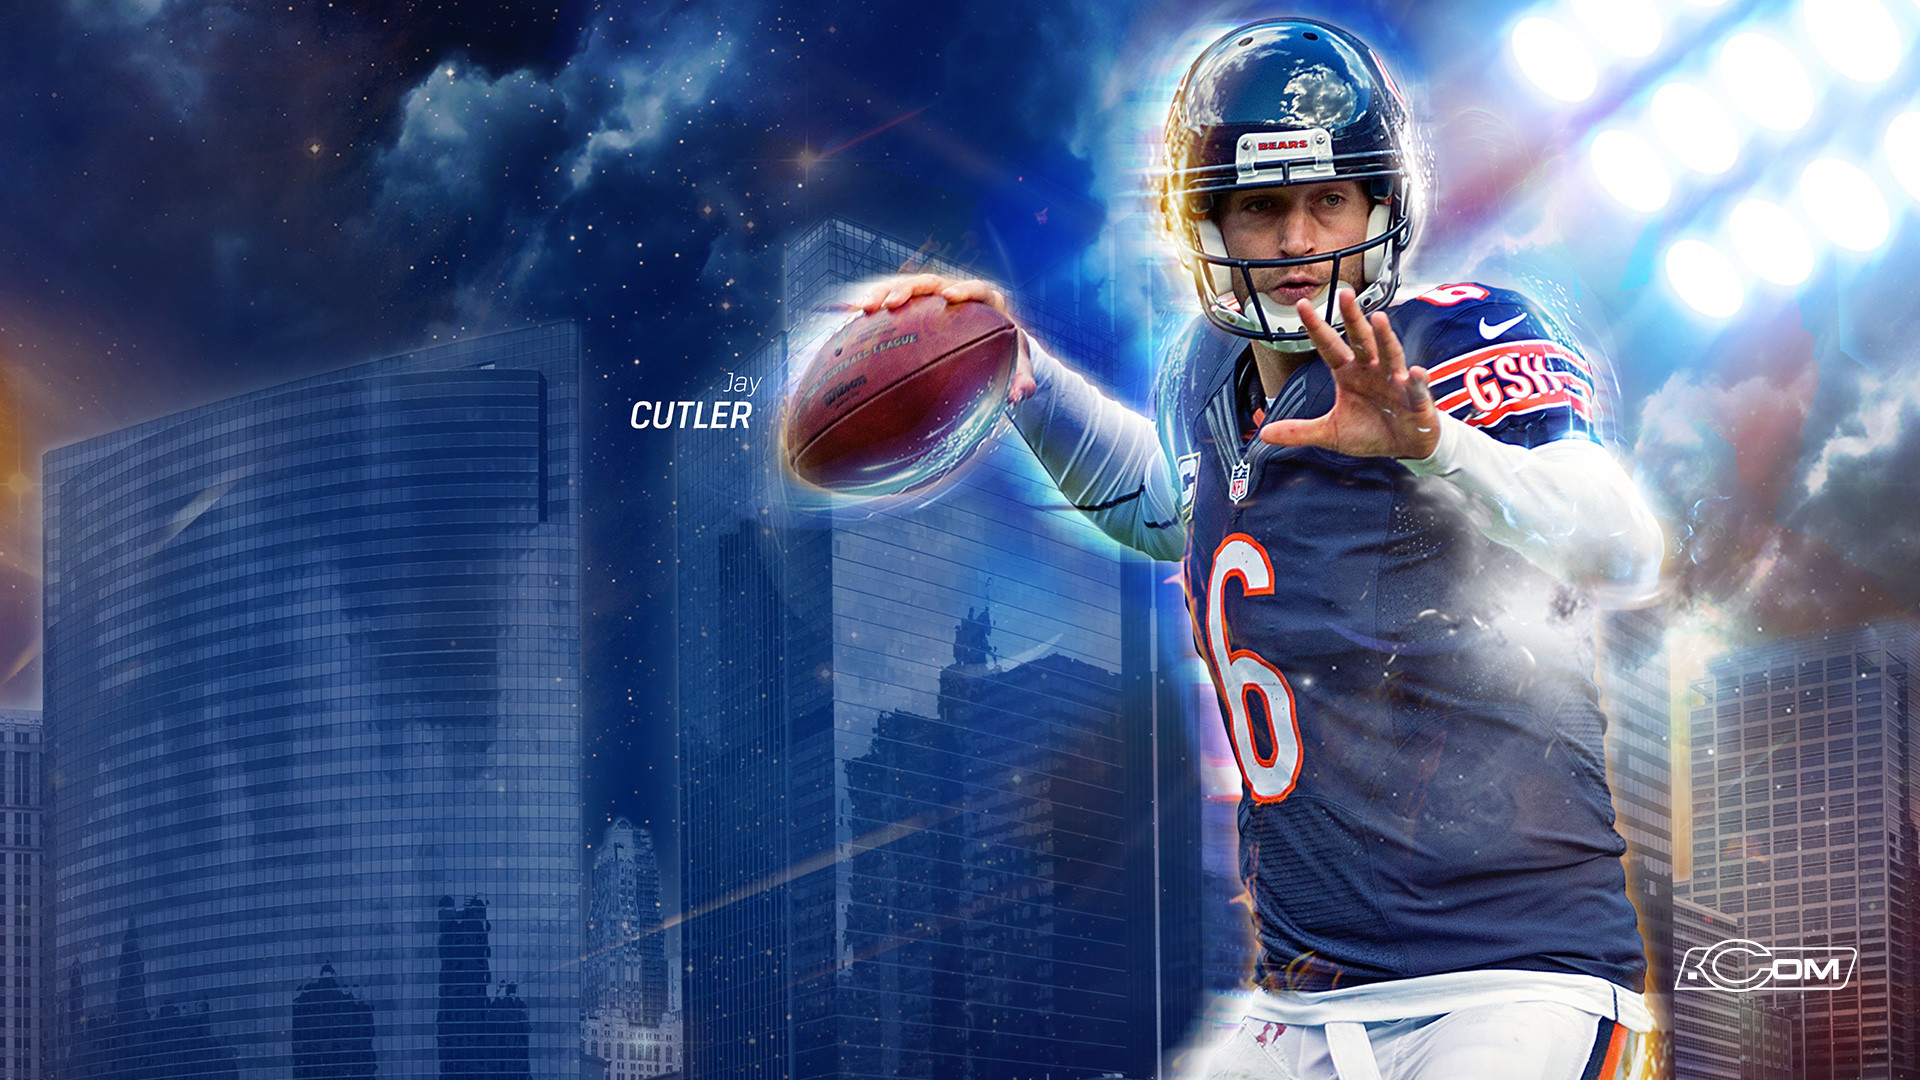 Jay Cutler Hd Wallpaper Cool Nfl Players Wallpapers 66 Images